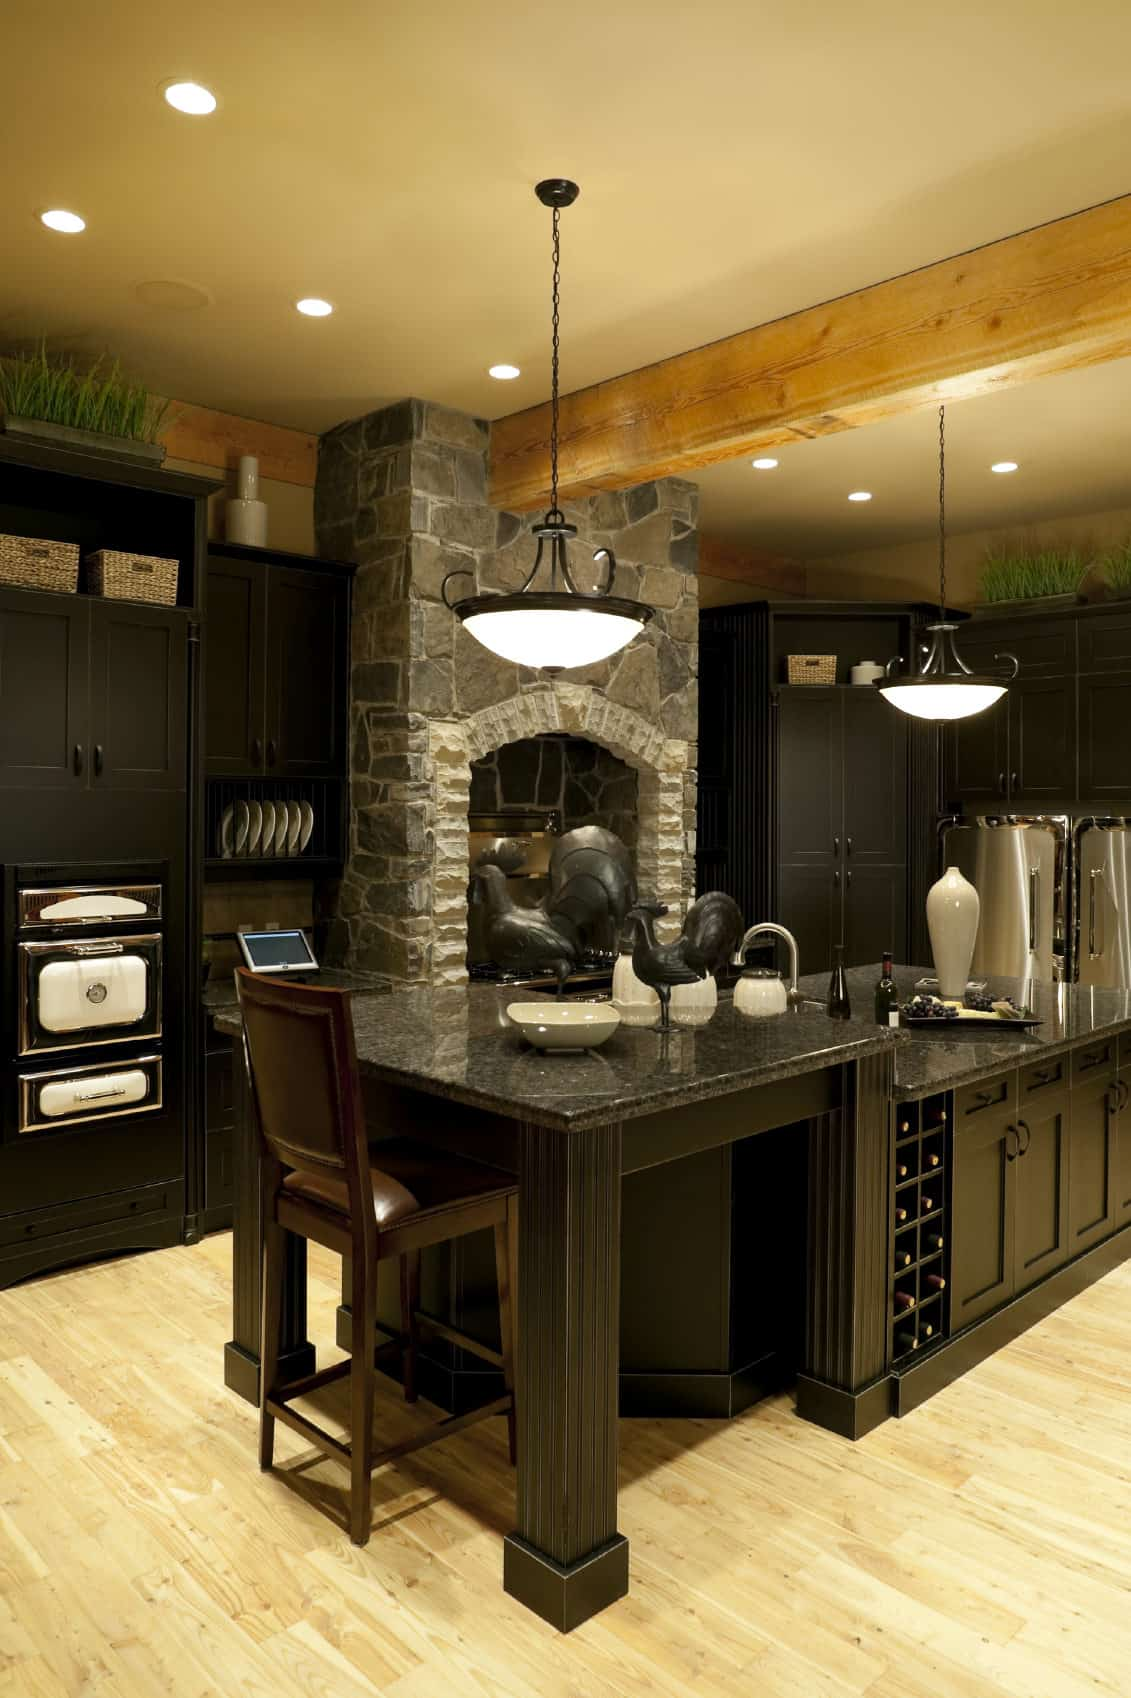 This two-tier kitchen island makes great use of light and dark slabs which are contrasting yet complimentary. The shade of the wood finishing is neither too dark nor too light and it therefore bridges the extremes of the stone topped exterior.